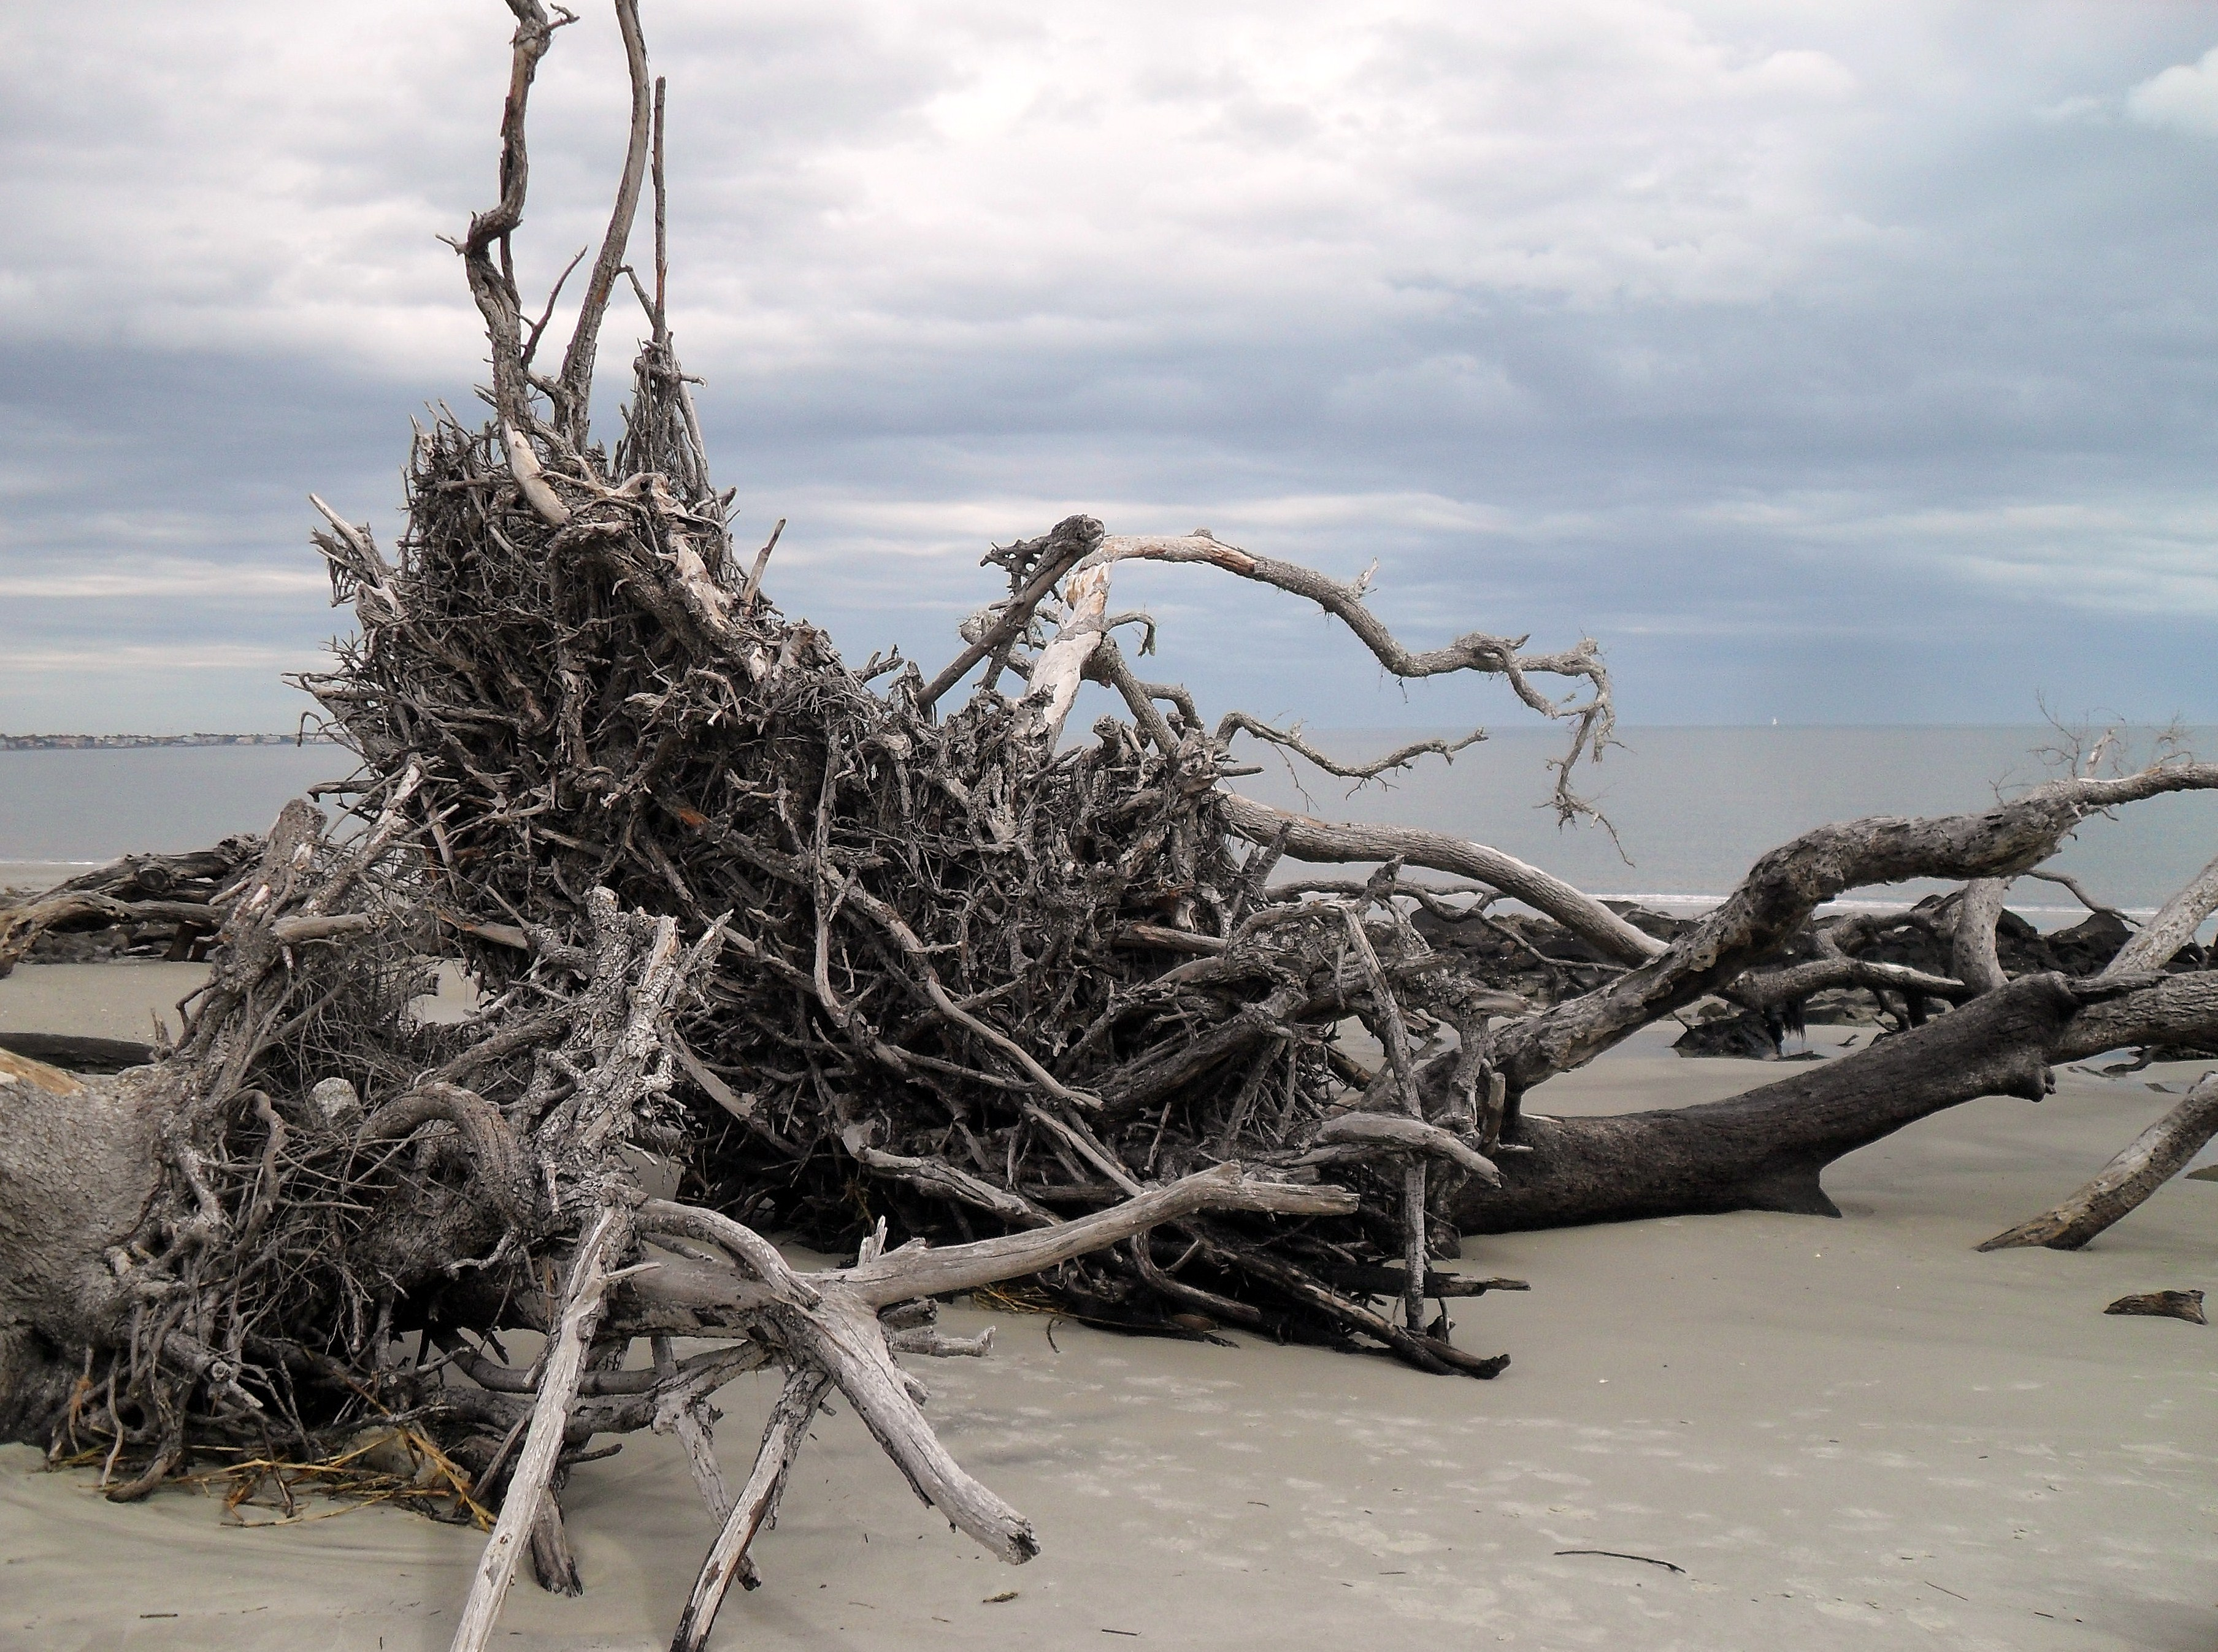 The boneyard beach rebecca heisman for What is soil made out of